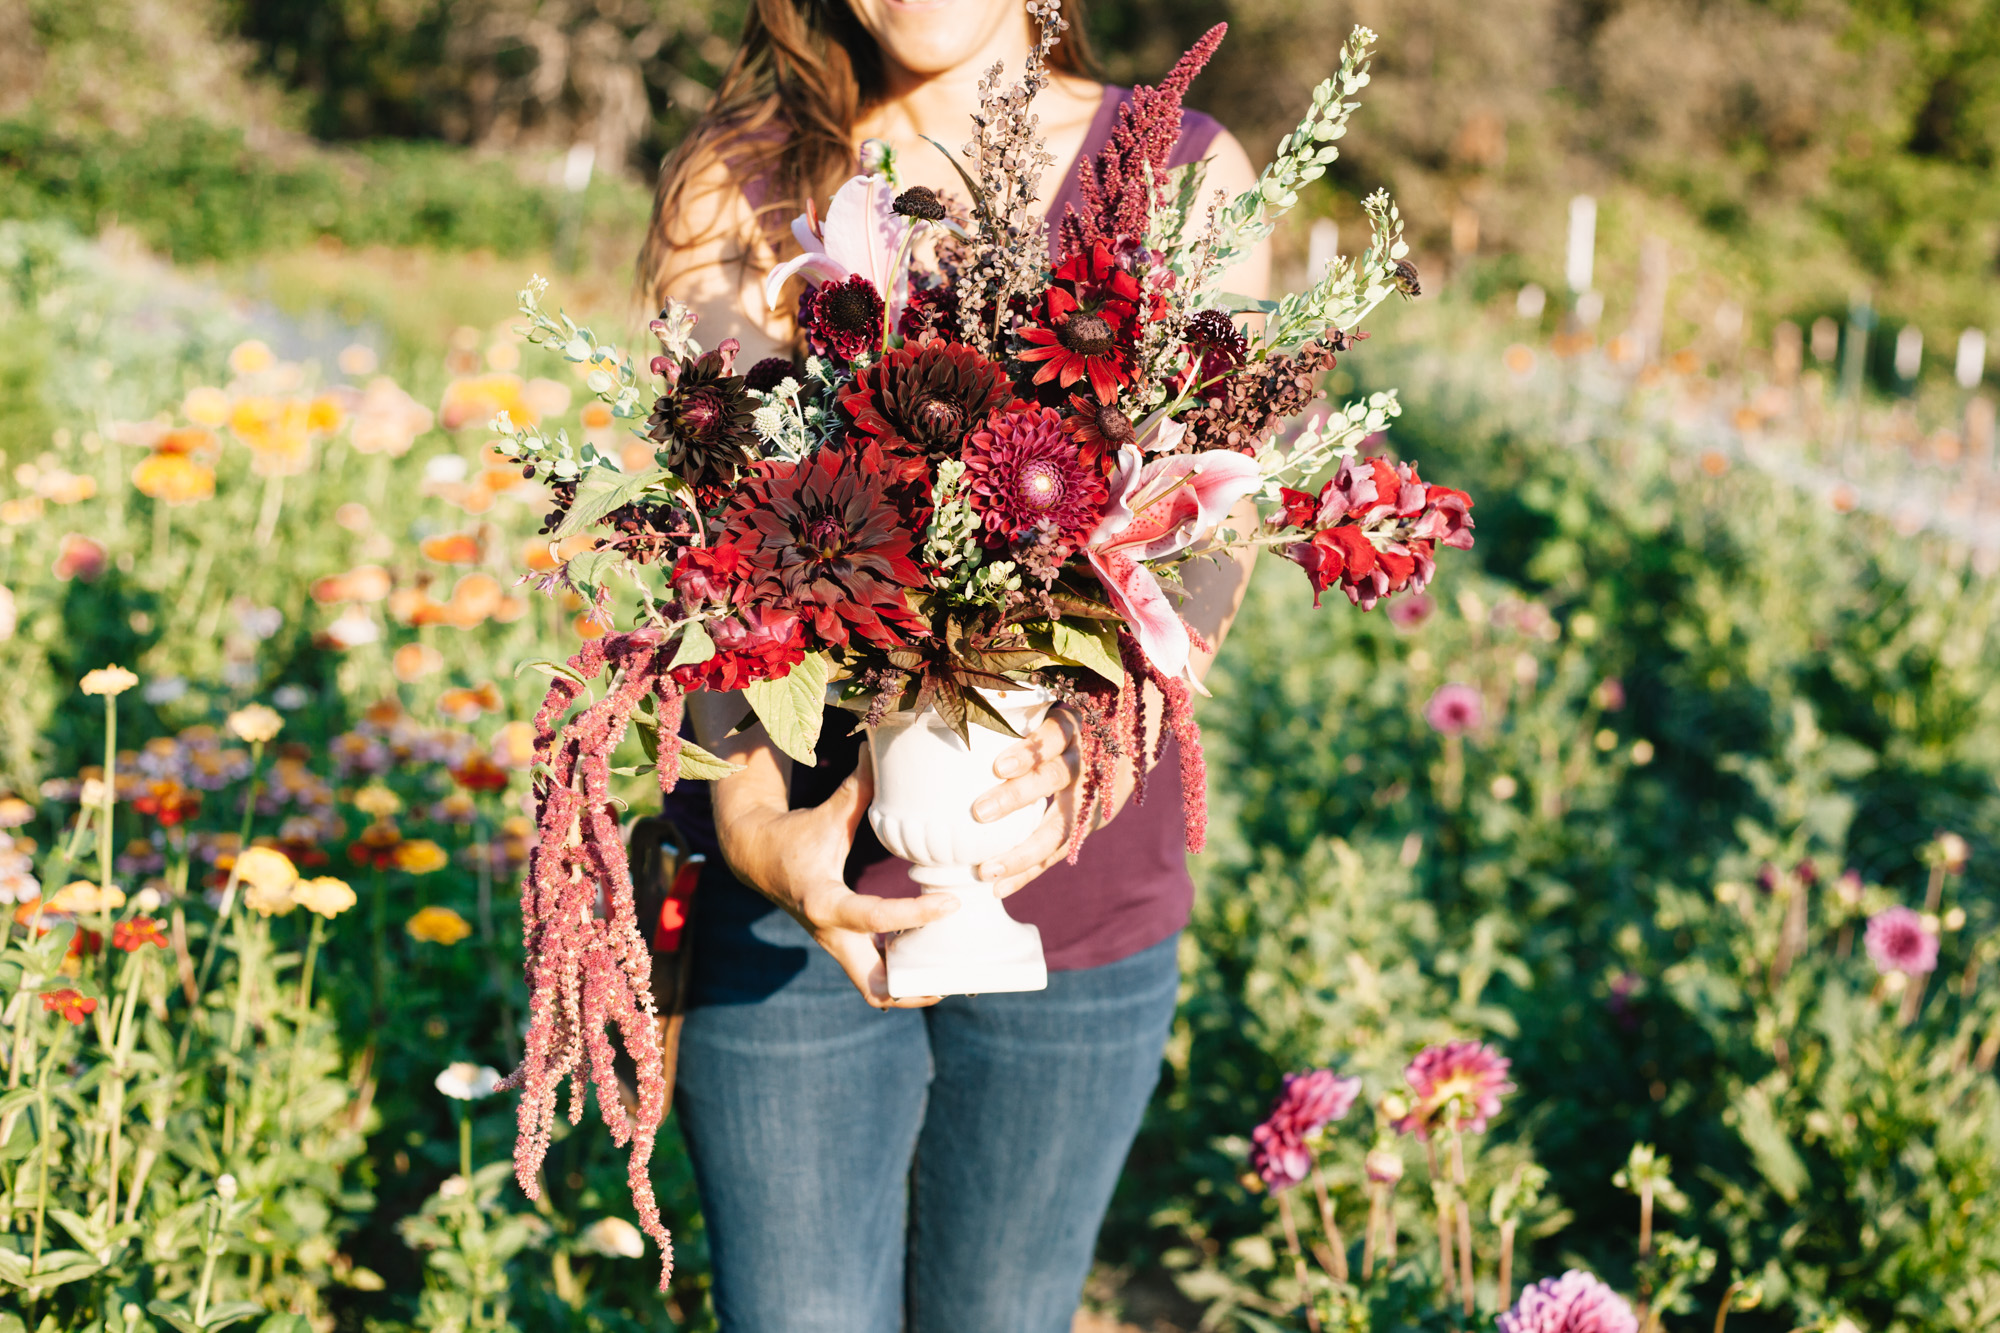 And here I am with a centerpiece arrangement in the field near where these flowers were harvested.